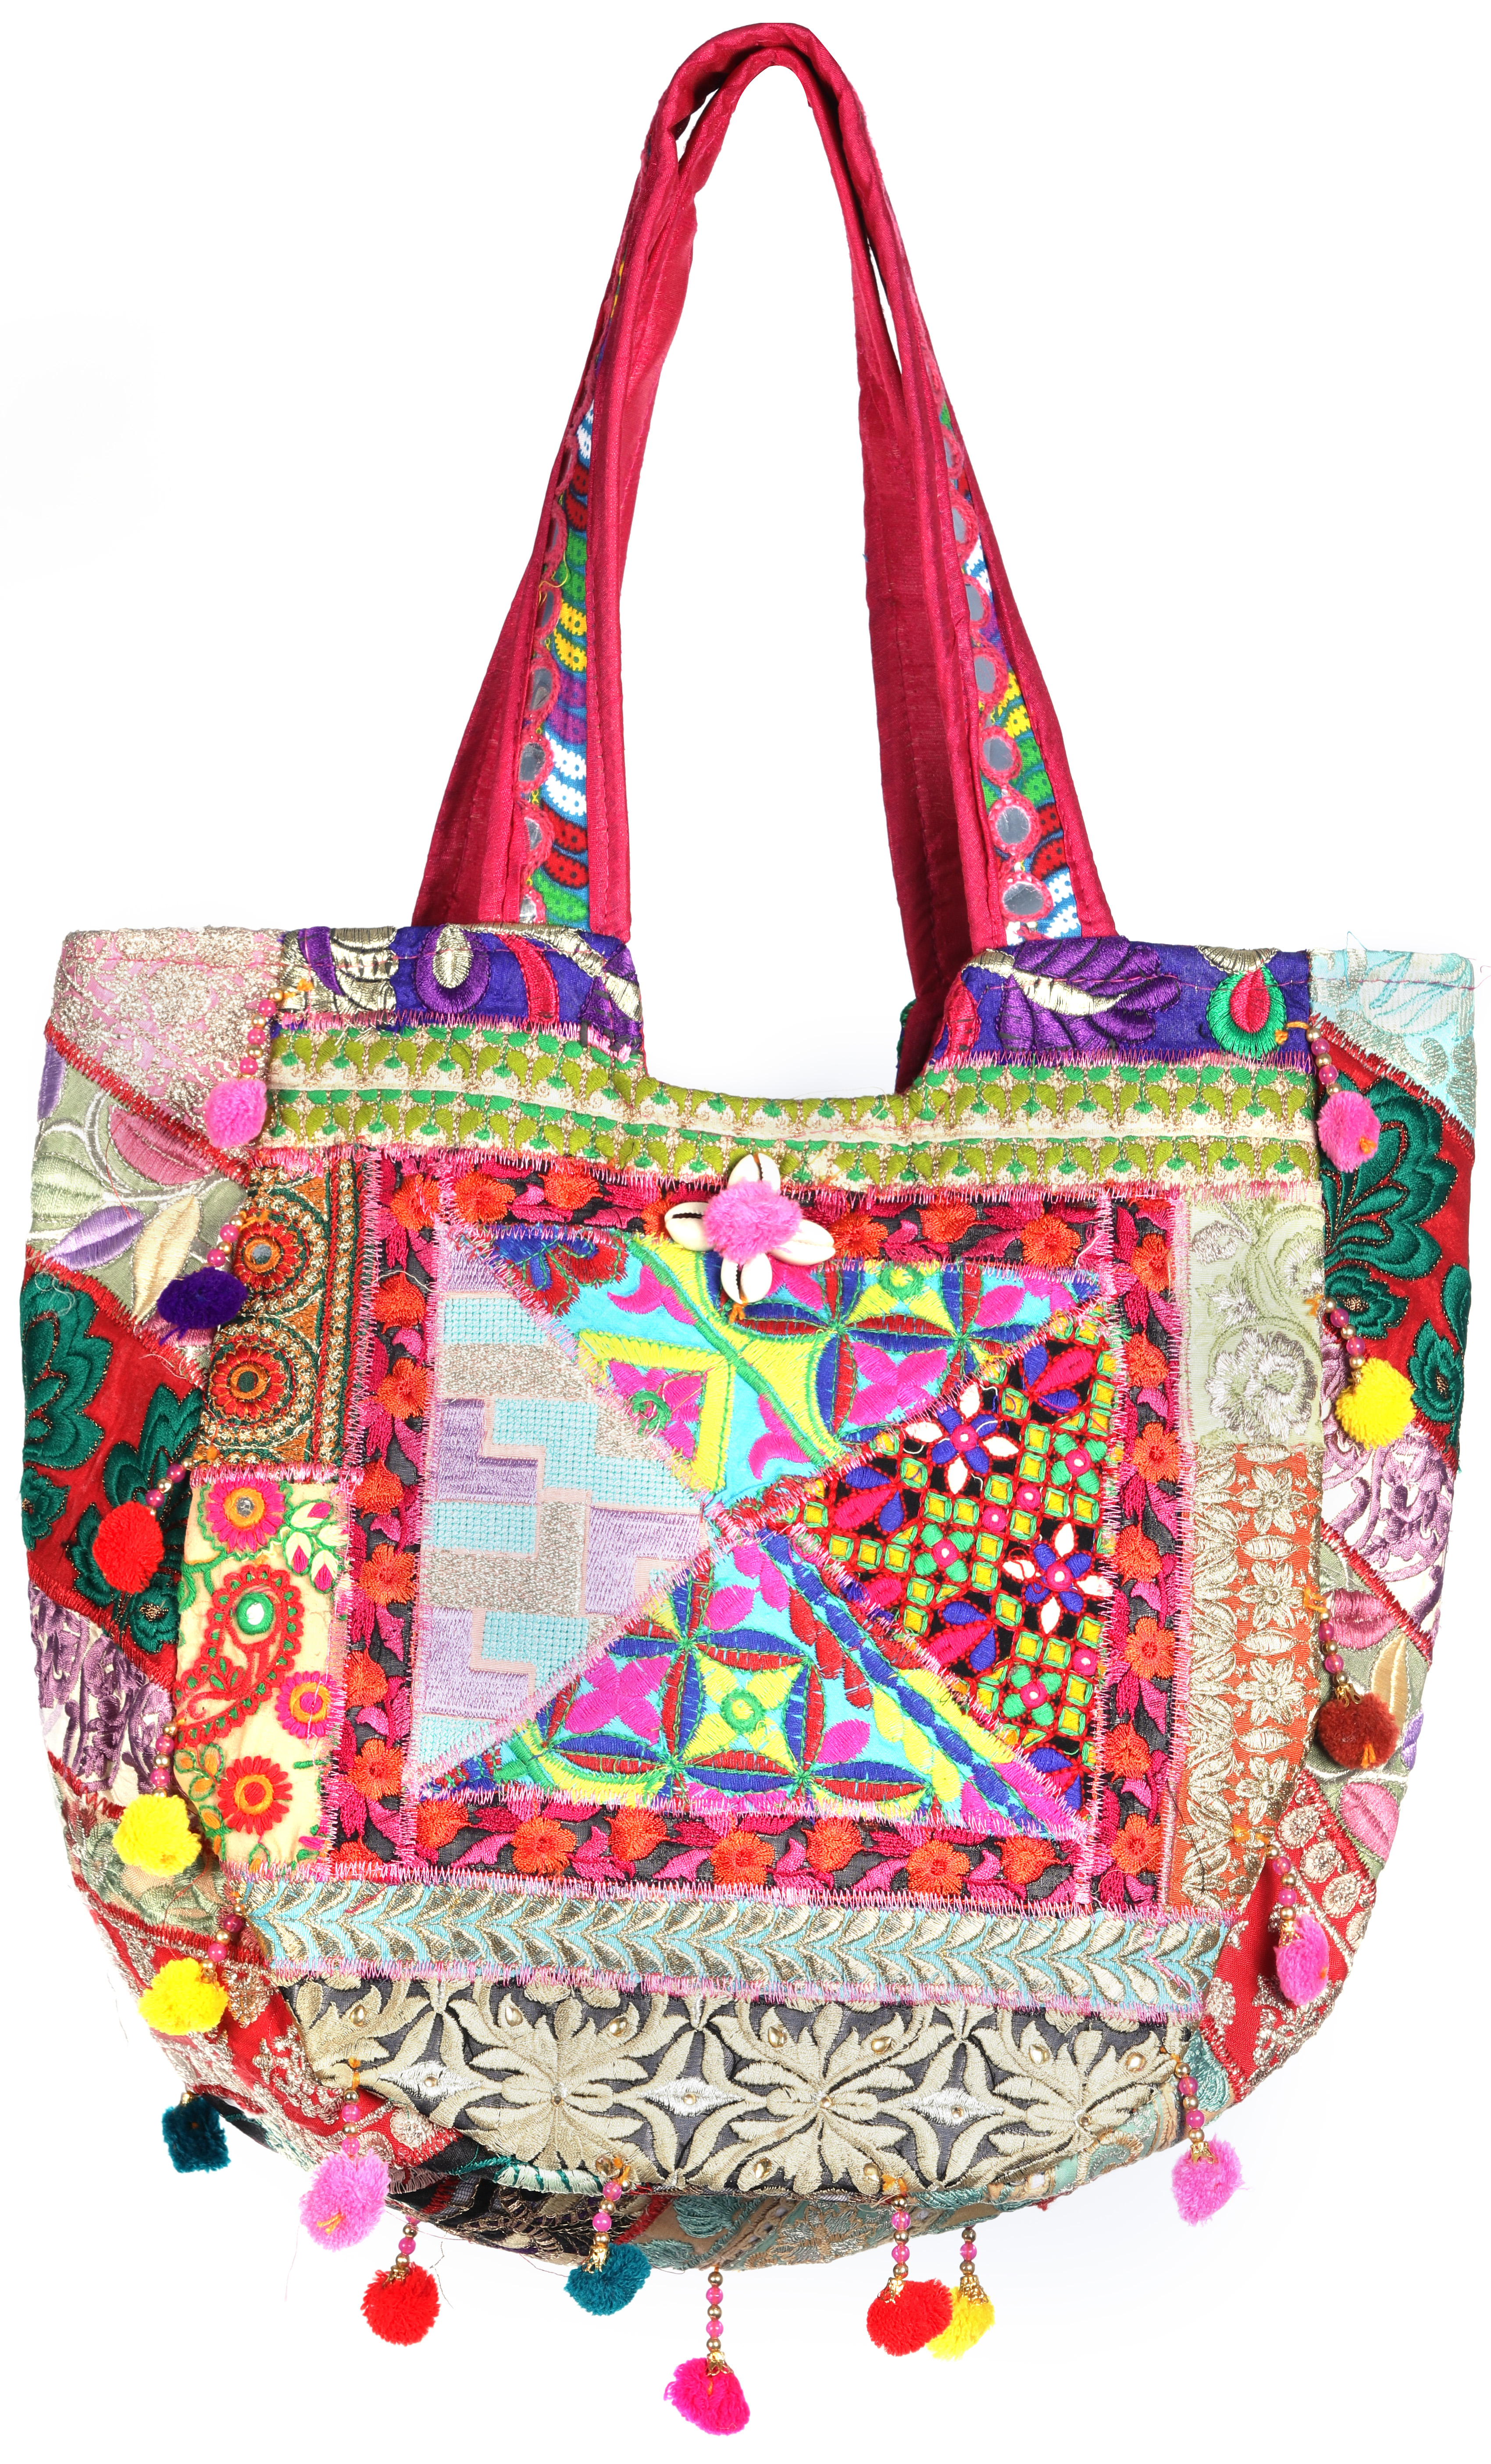 Shopper bag from kutch with floral embroidery and crystals